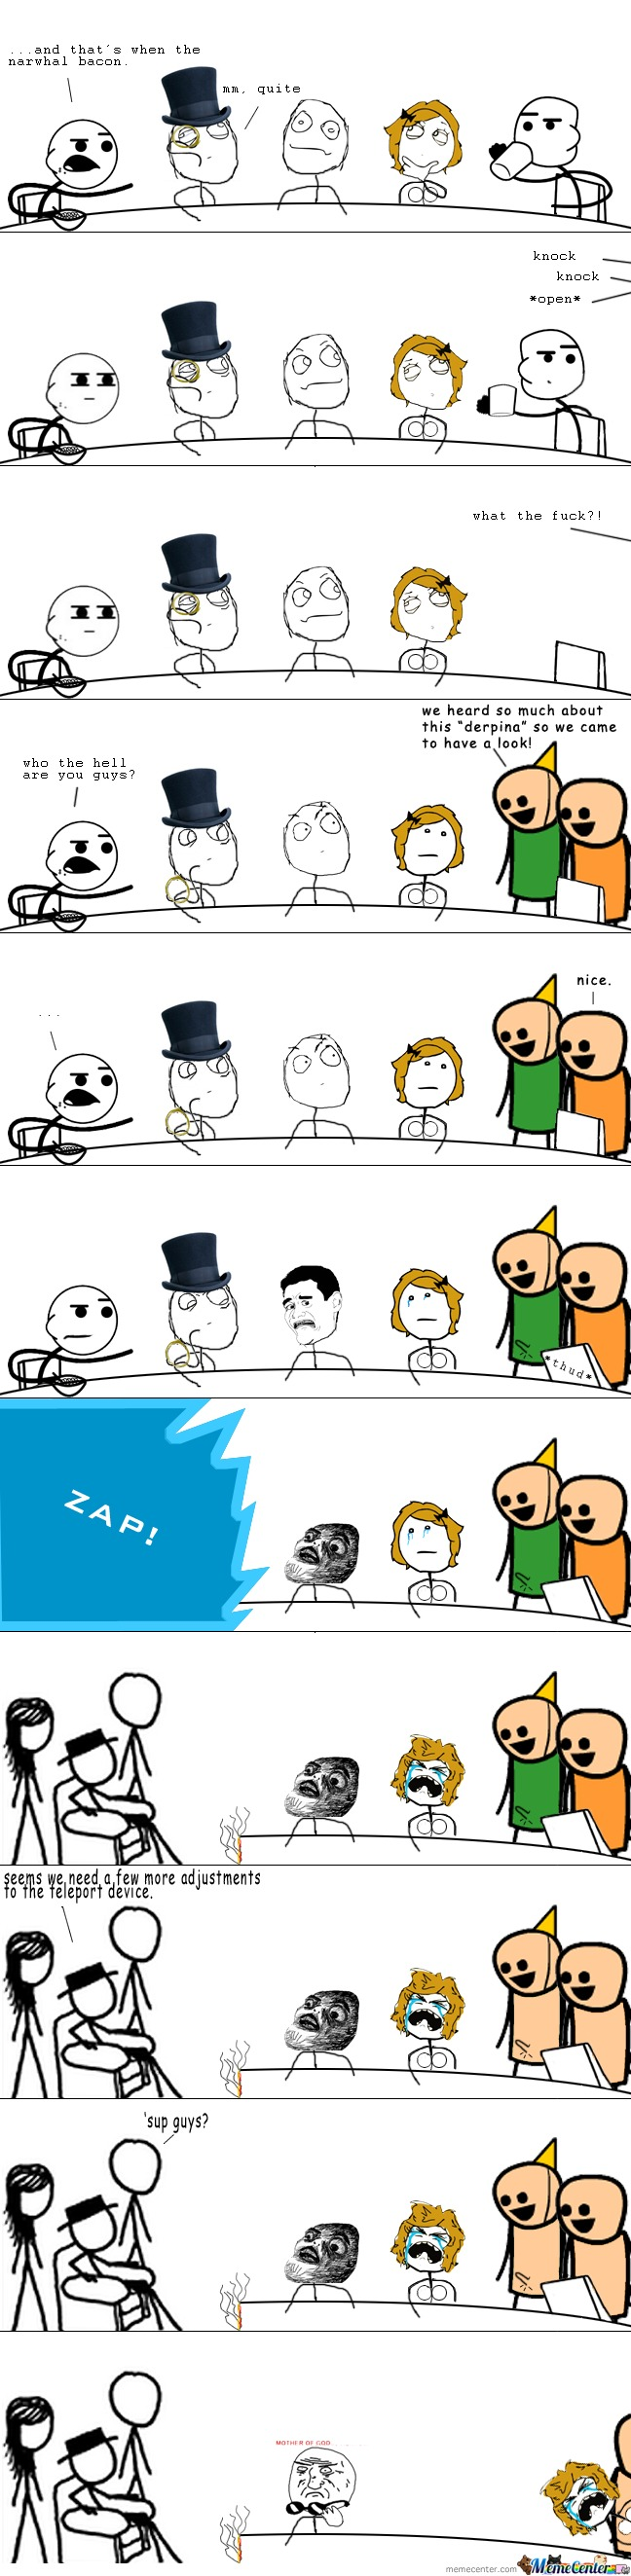 Cyanide & Happines Vs Rage Comics